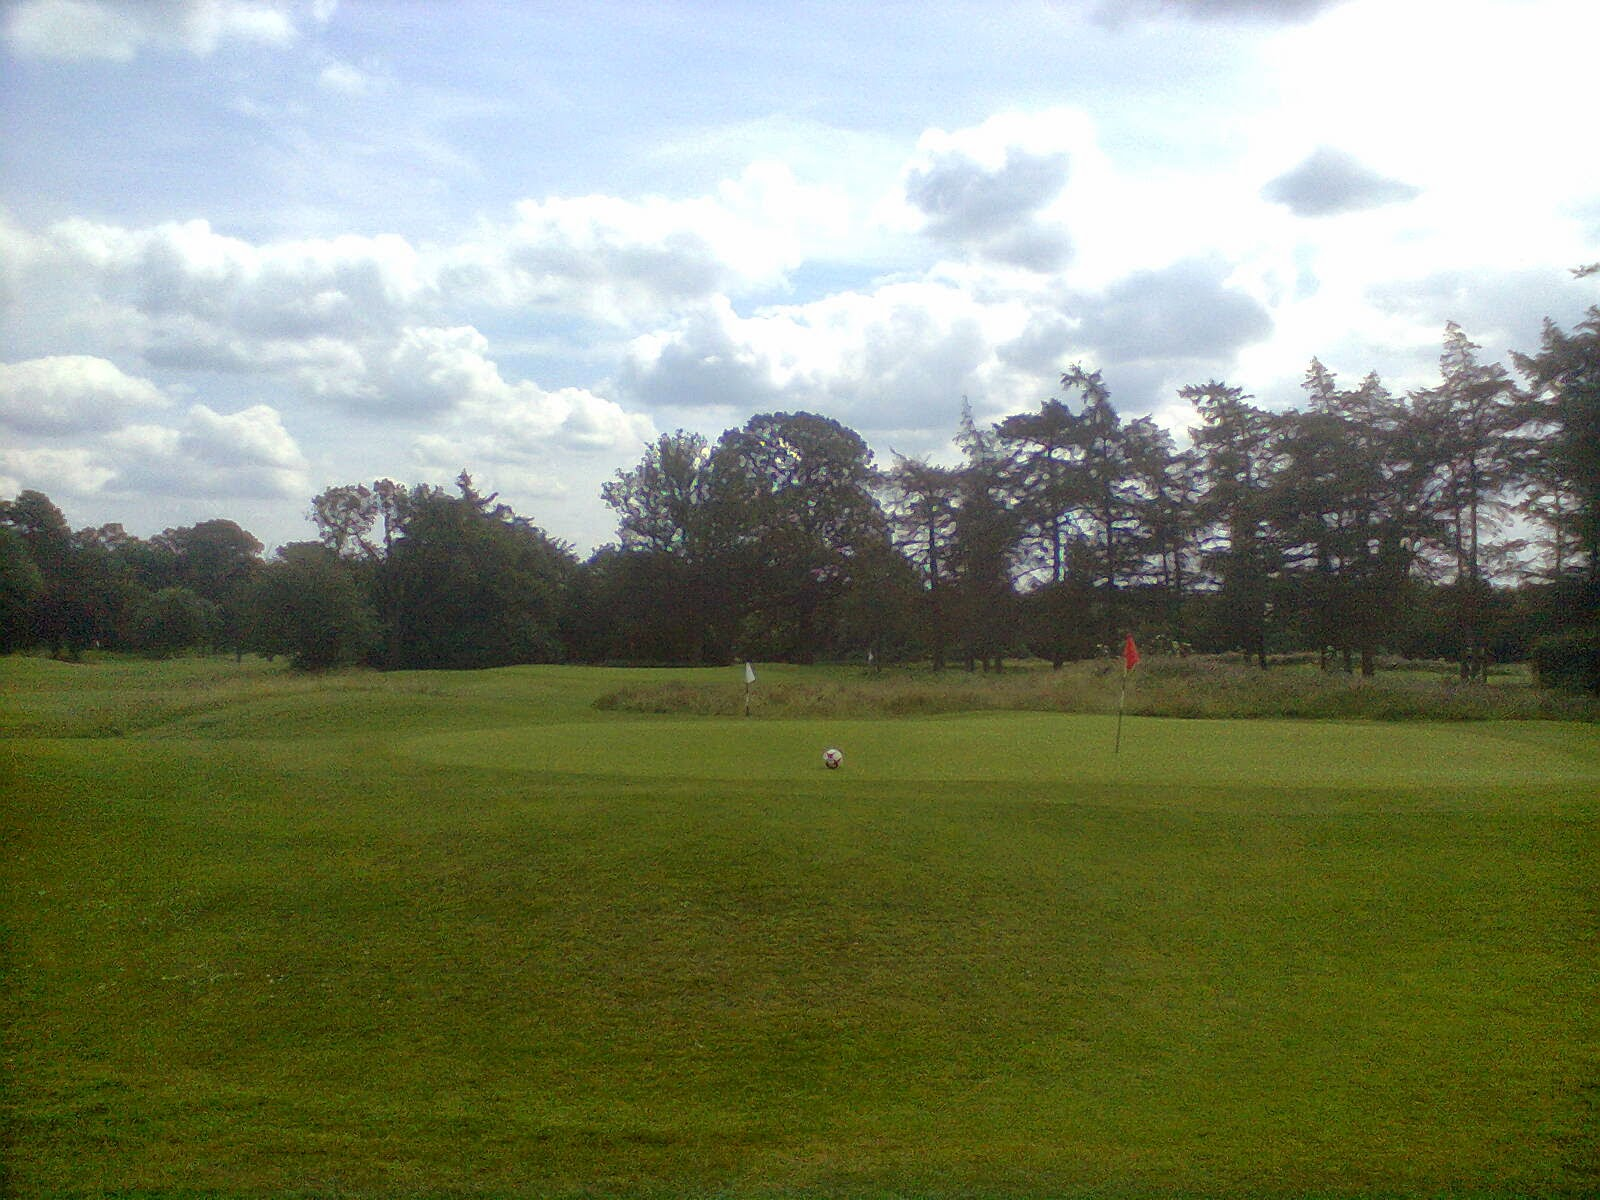 FootGolf at Stockwood Park in Luton